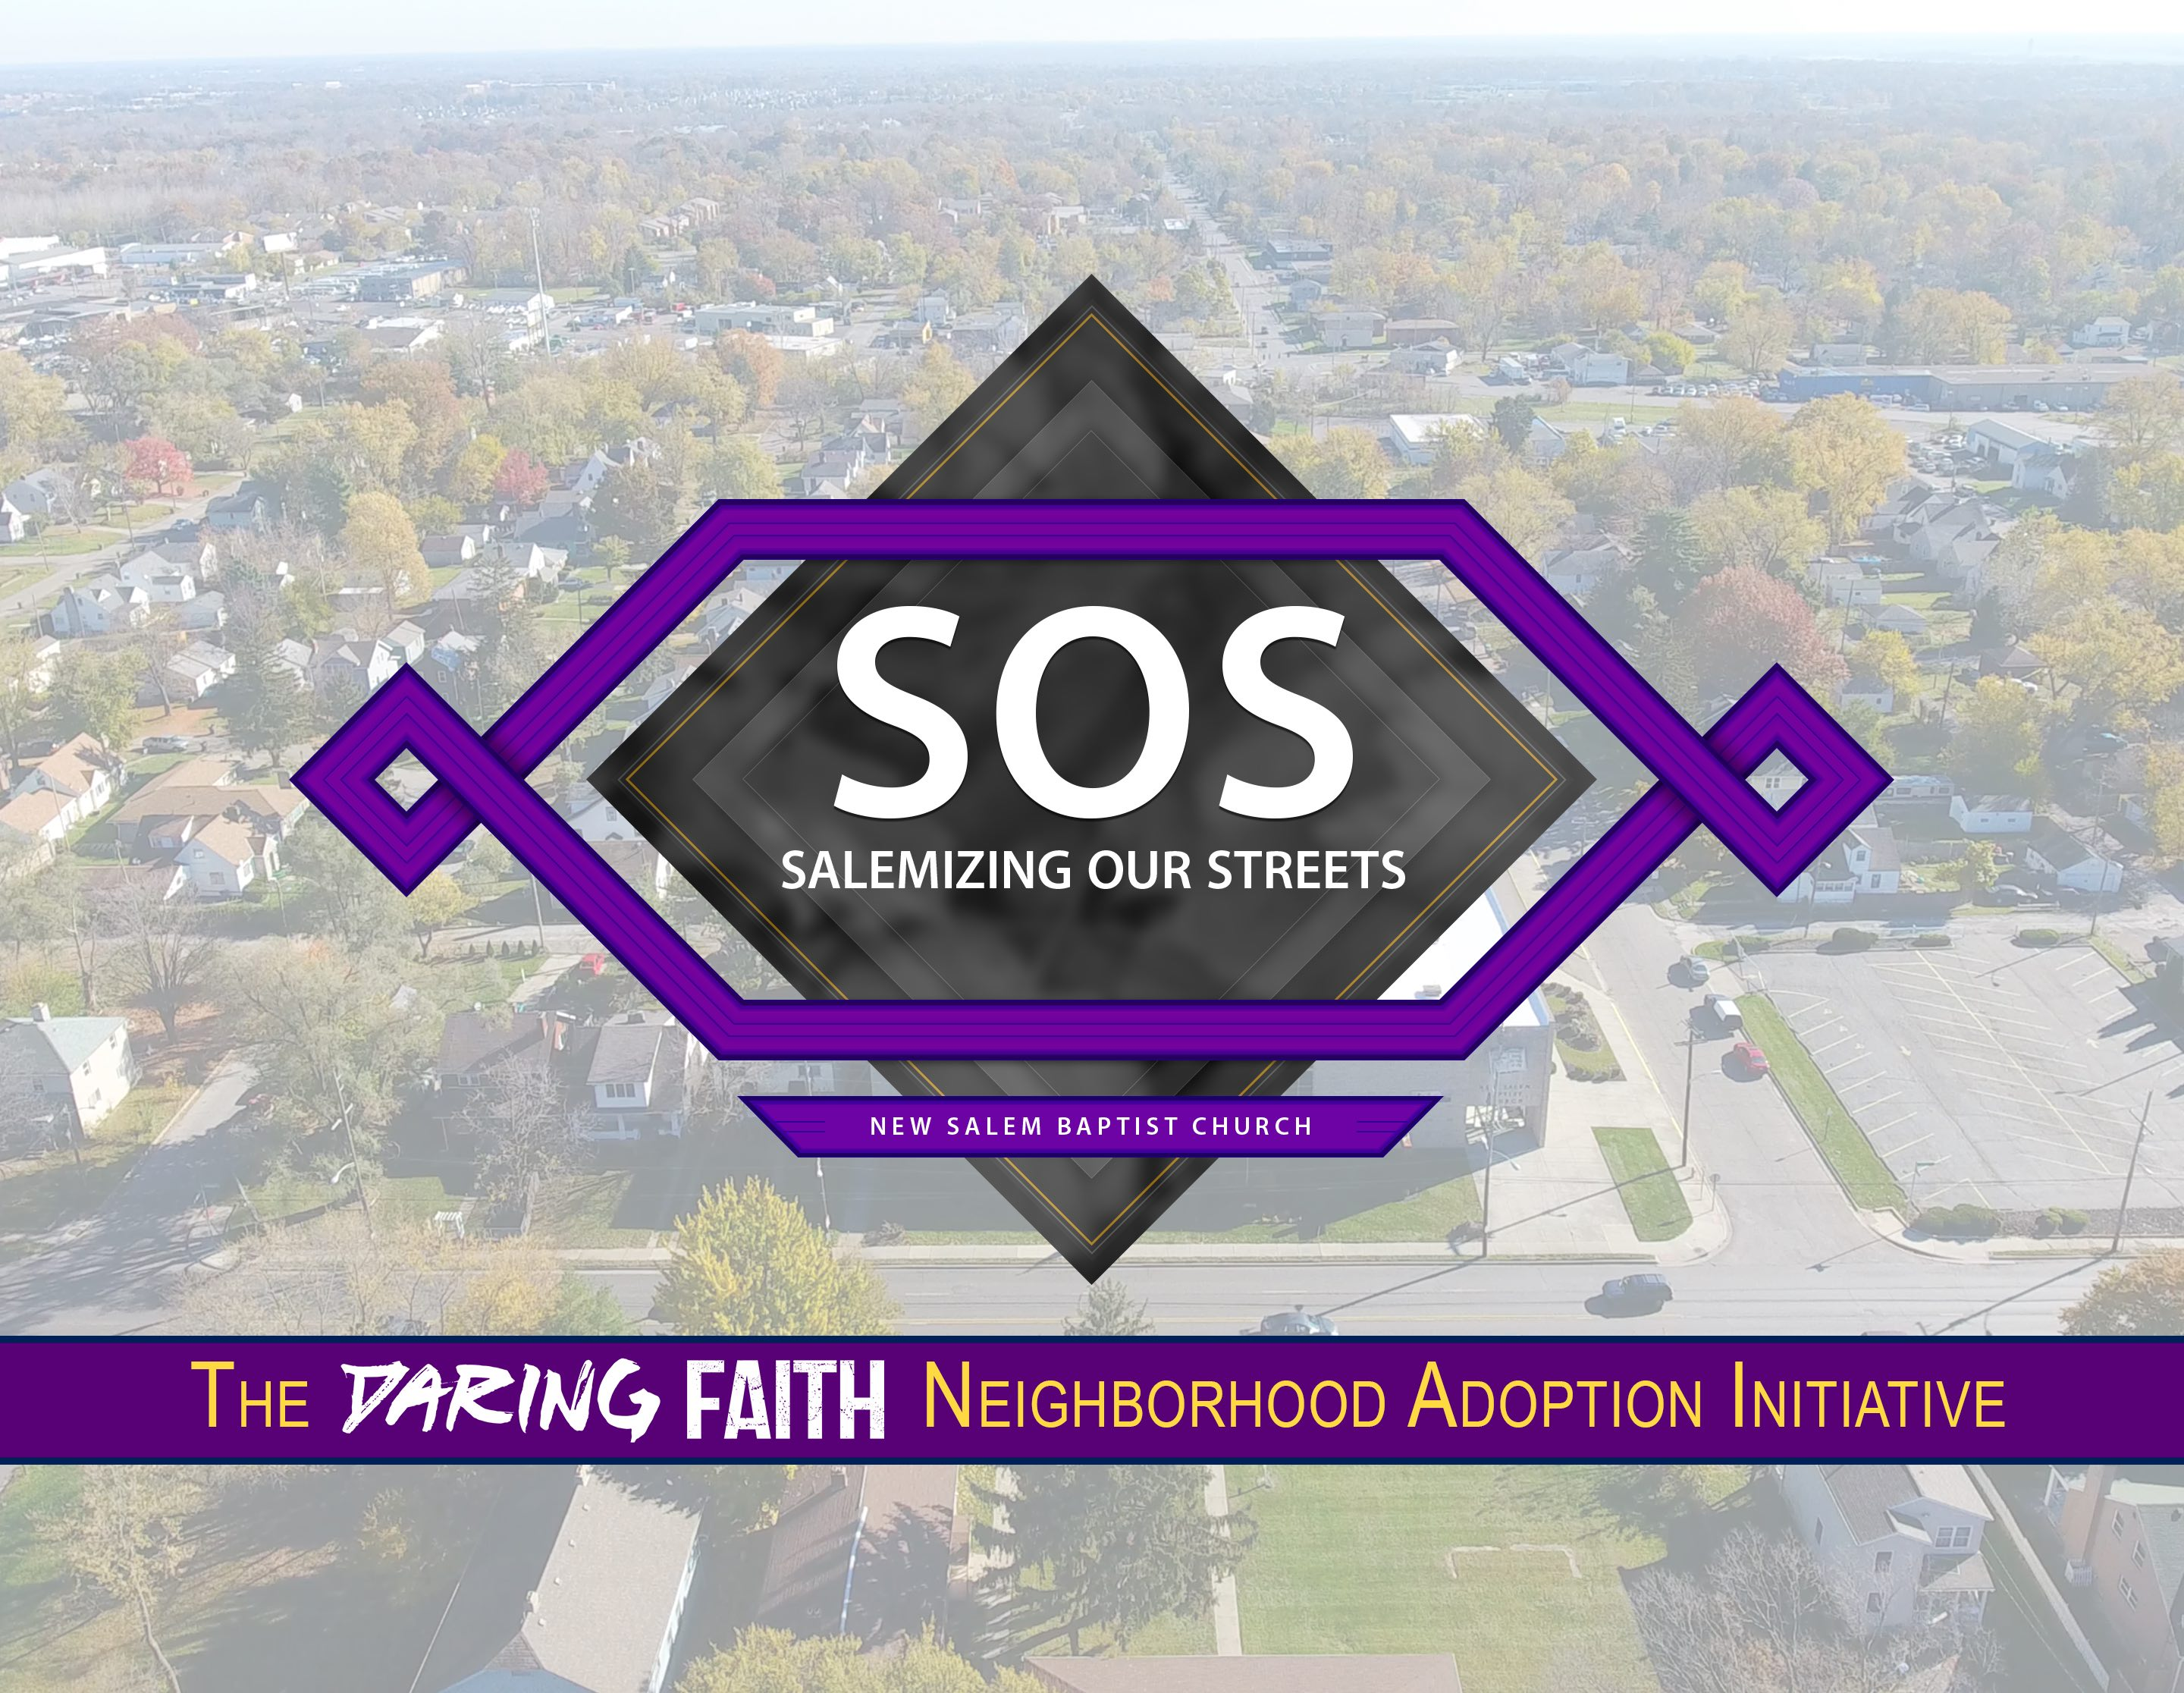 Salemizing Our Streets Neighborhood Adoption Initiative